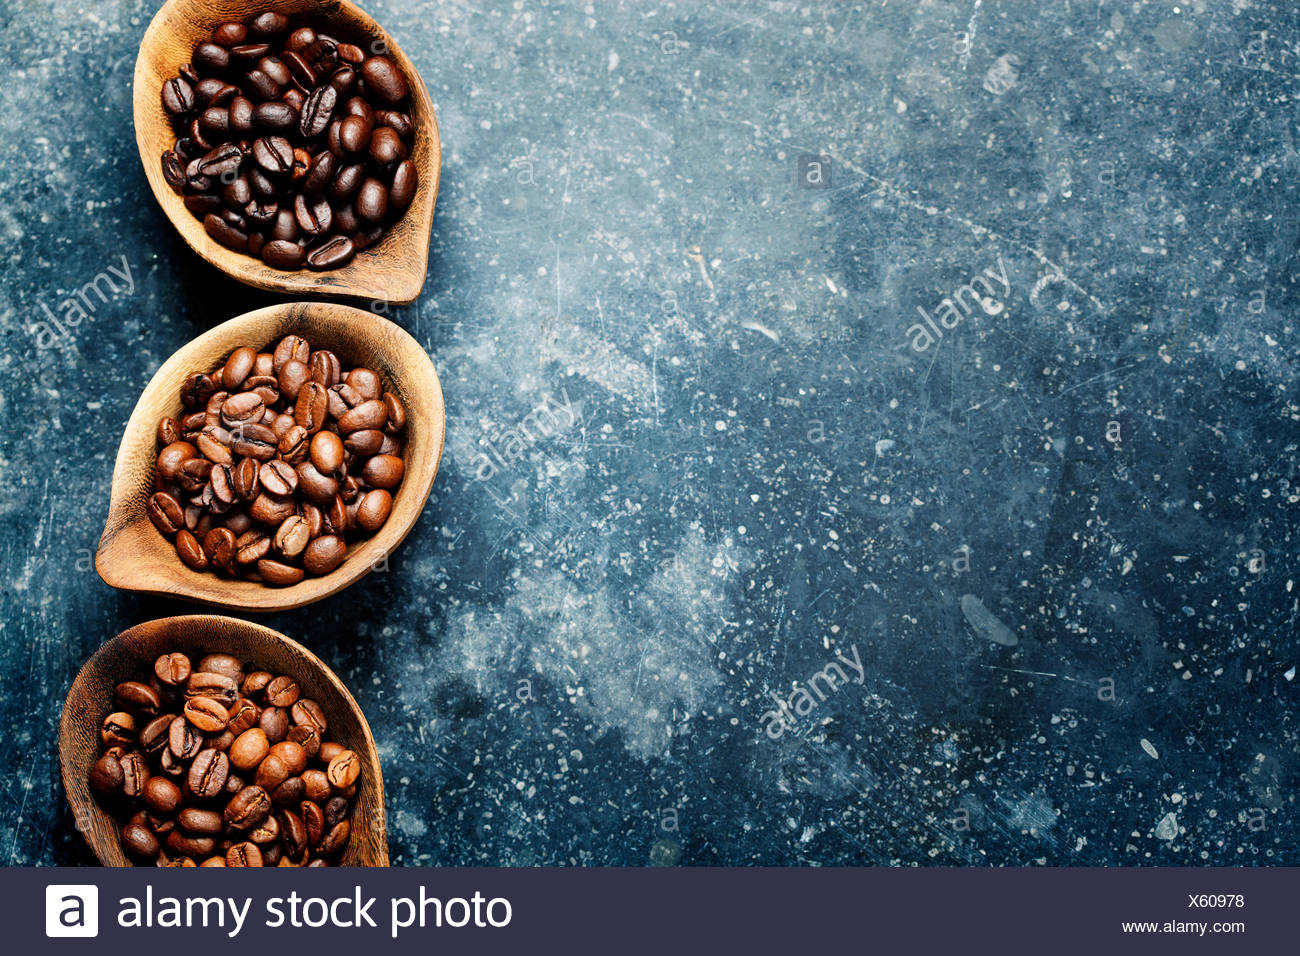 Top view of three different varieties of coffee beans on dark vintage background - Stock Image